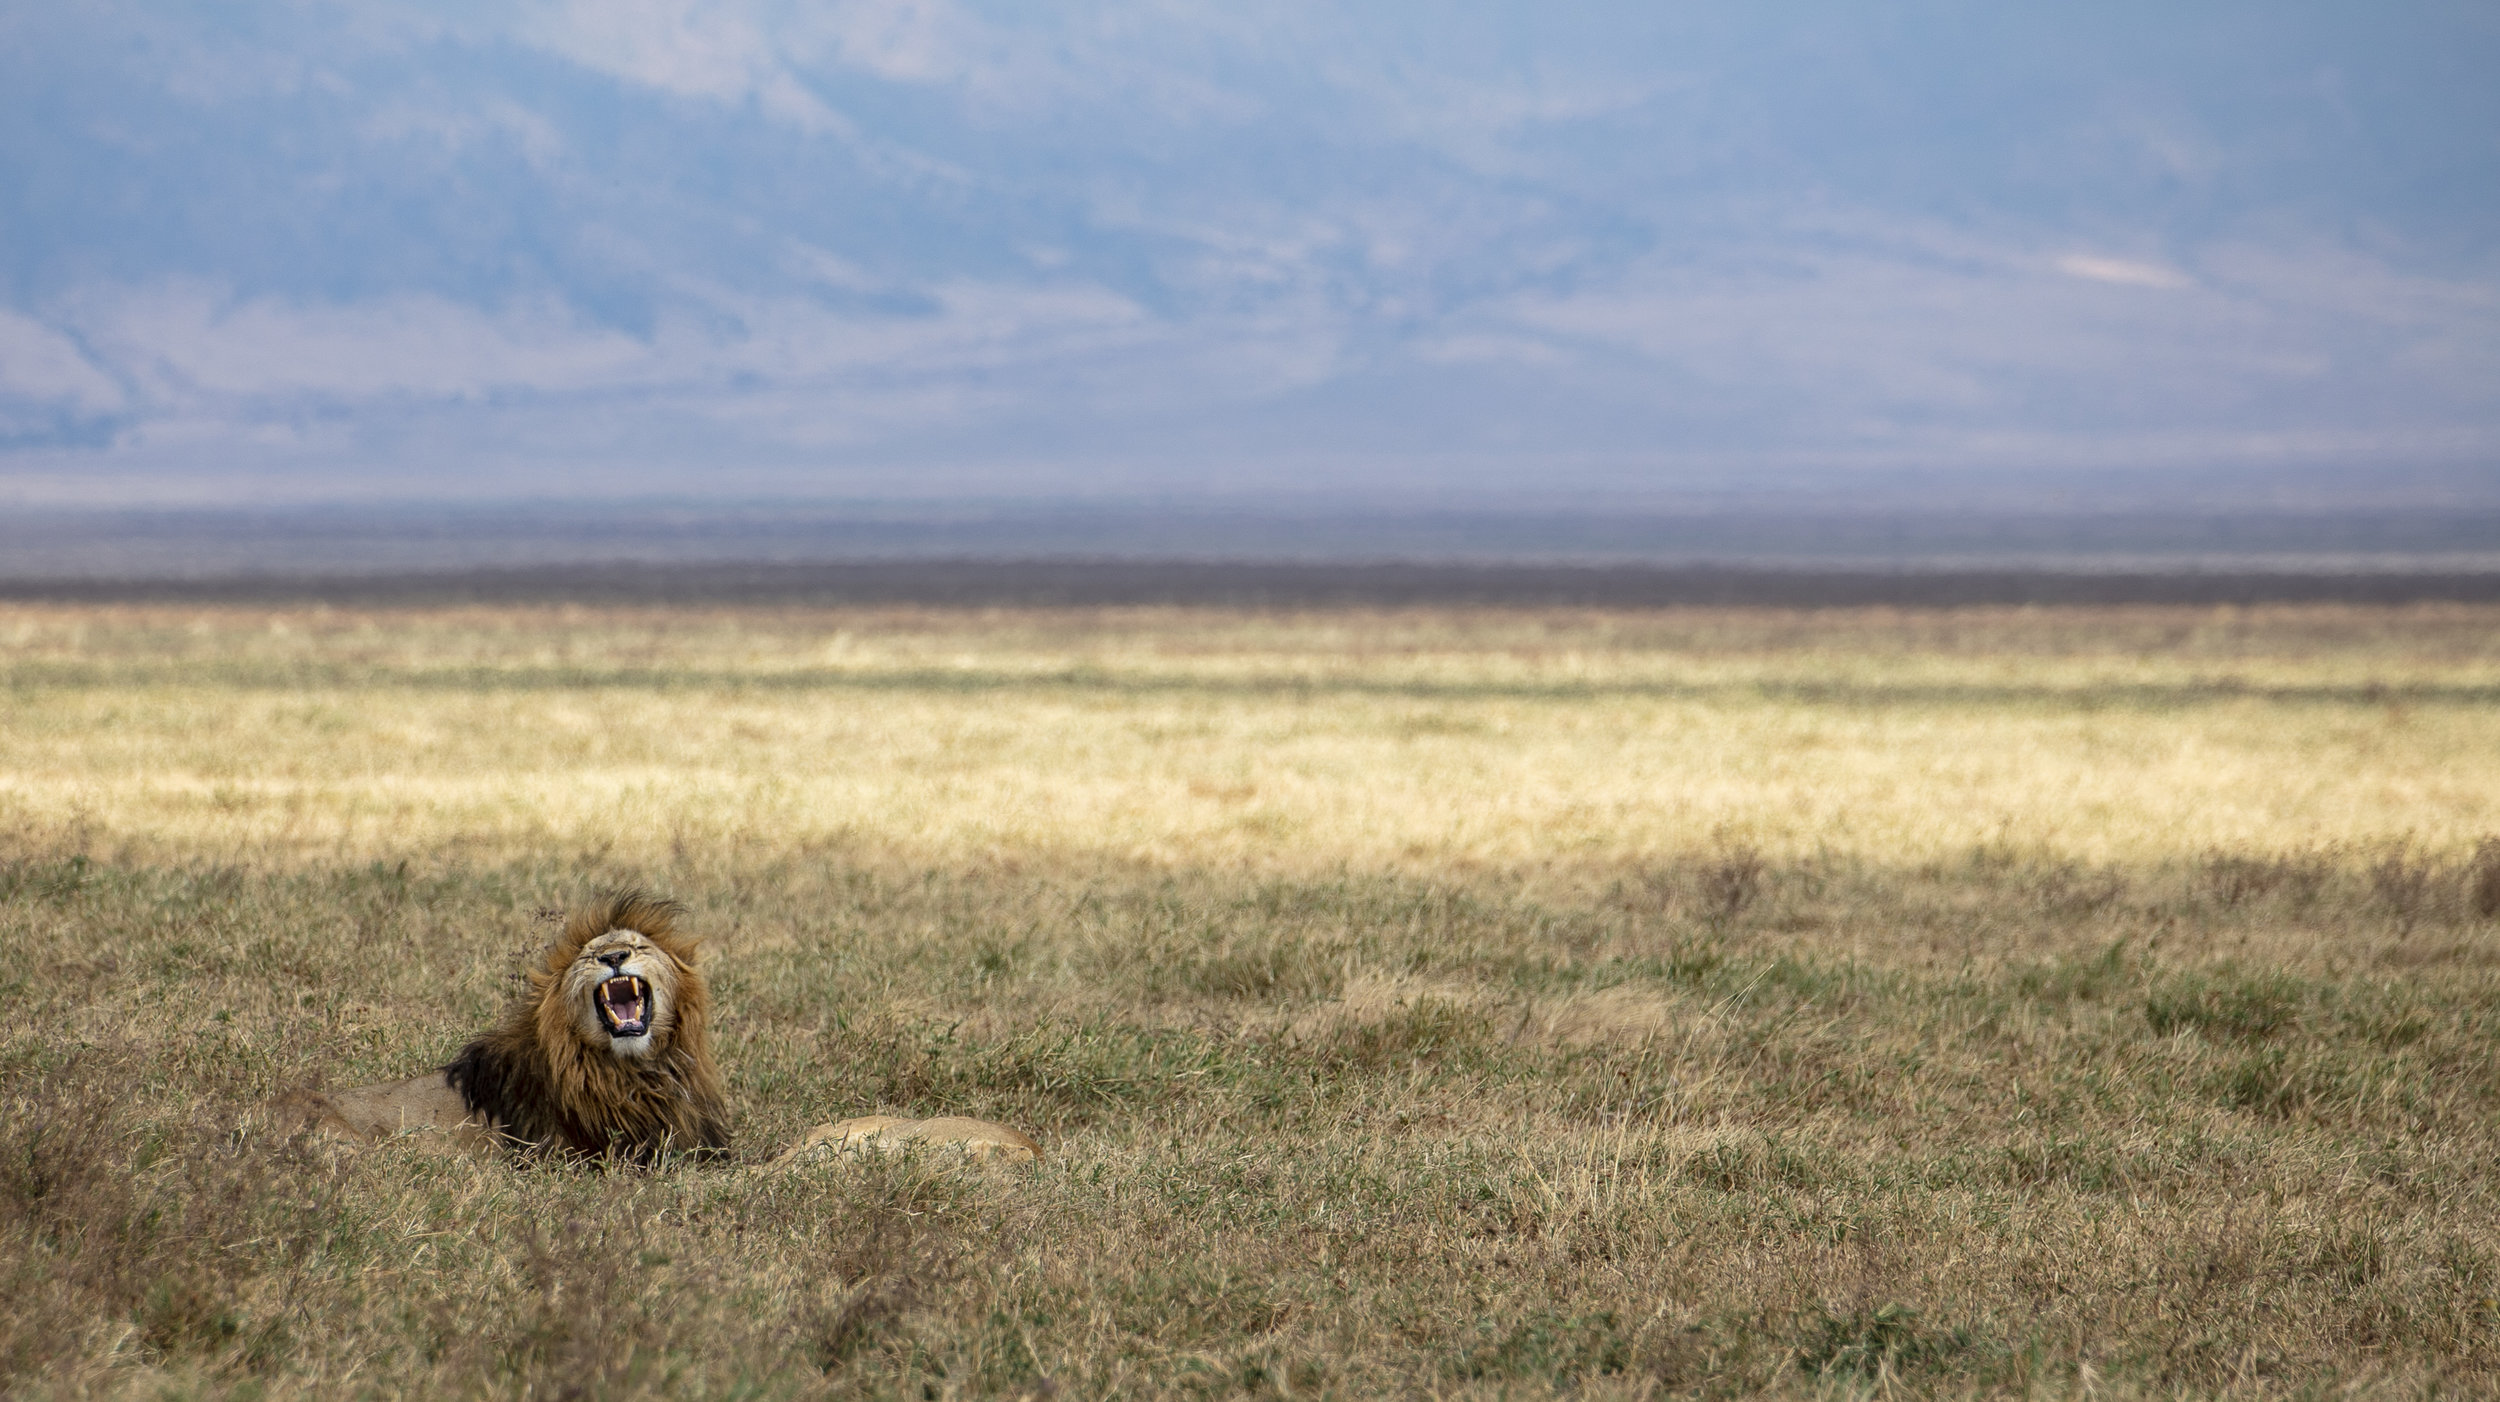 African Adventure - 31 July '18 - Ngorongoro (Crater) Conservation Area to Meserani, Tanzania - 036.JPG